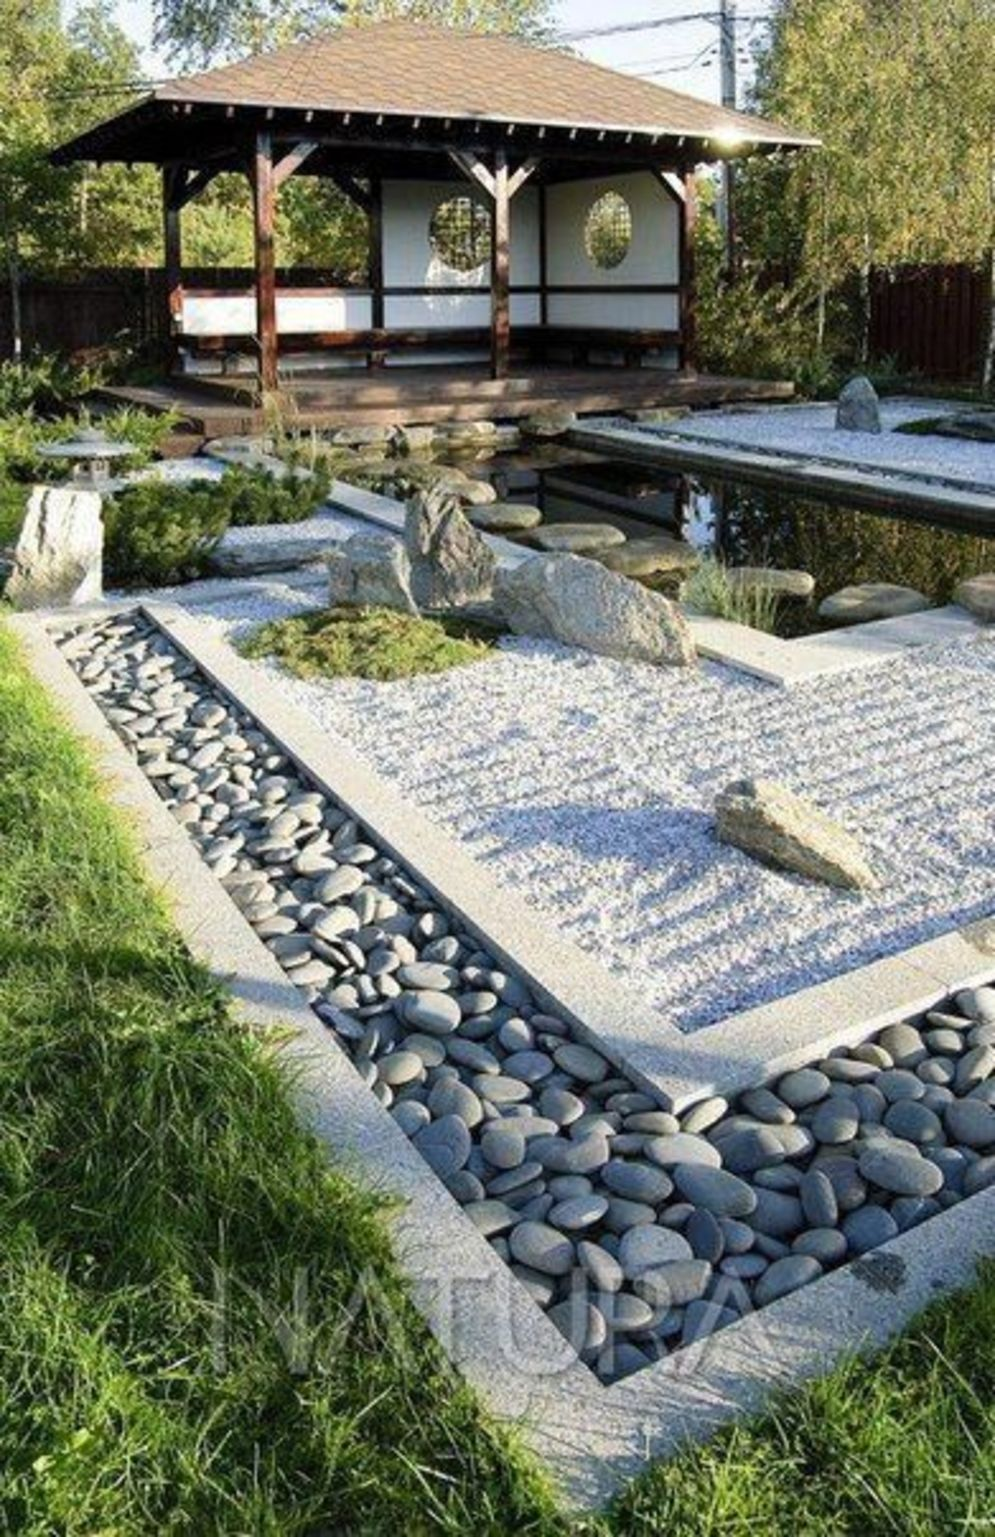 Beautiful Zen garden style with peaceful arrangements creating peaceful and harmonies display that will calm our mind Image 17